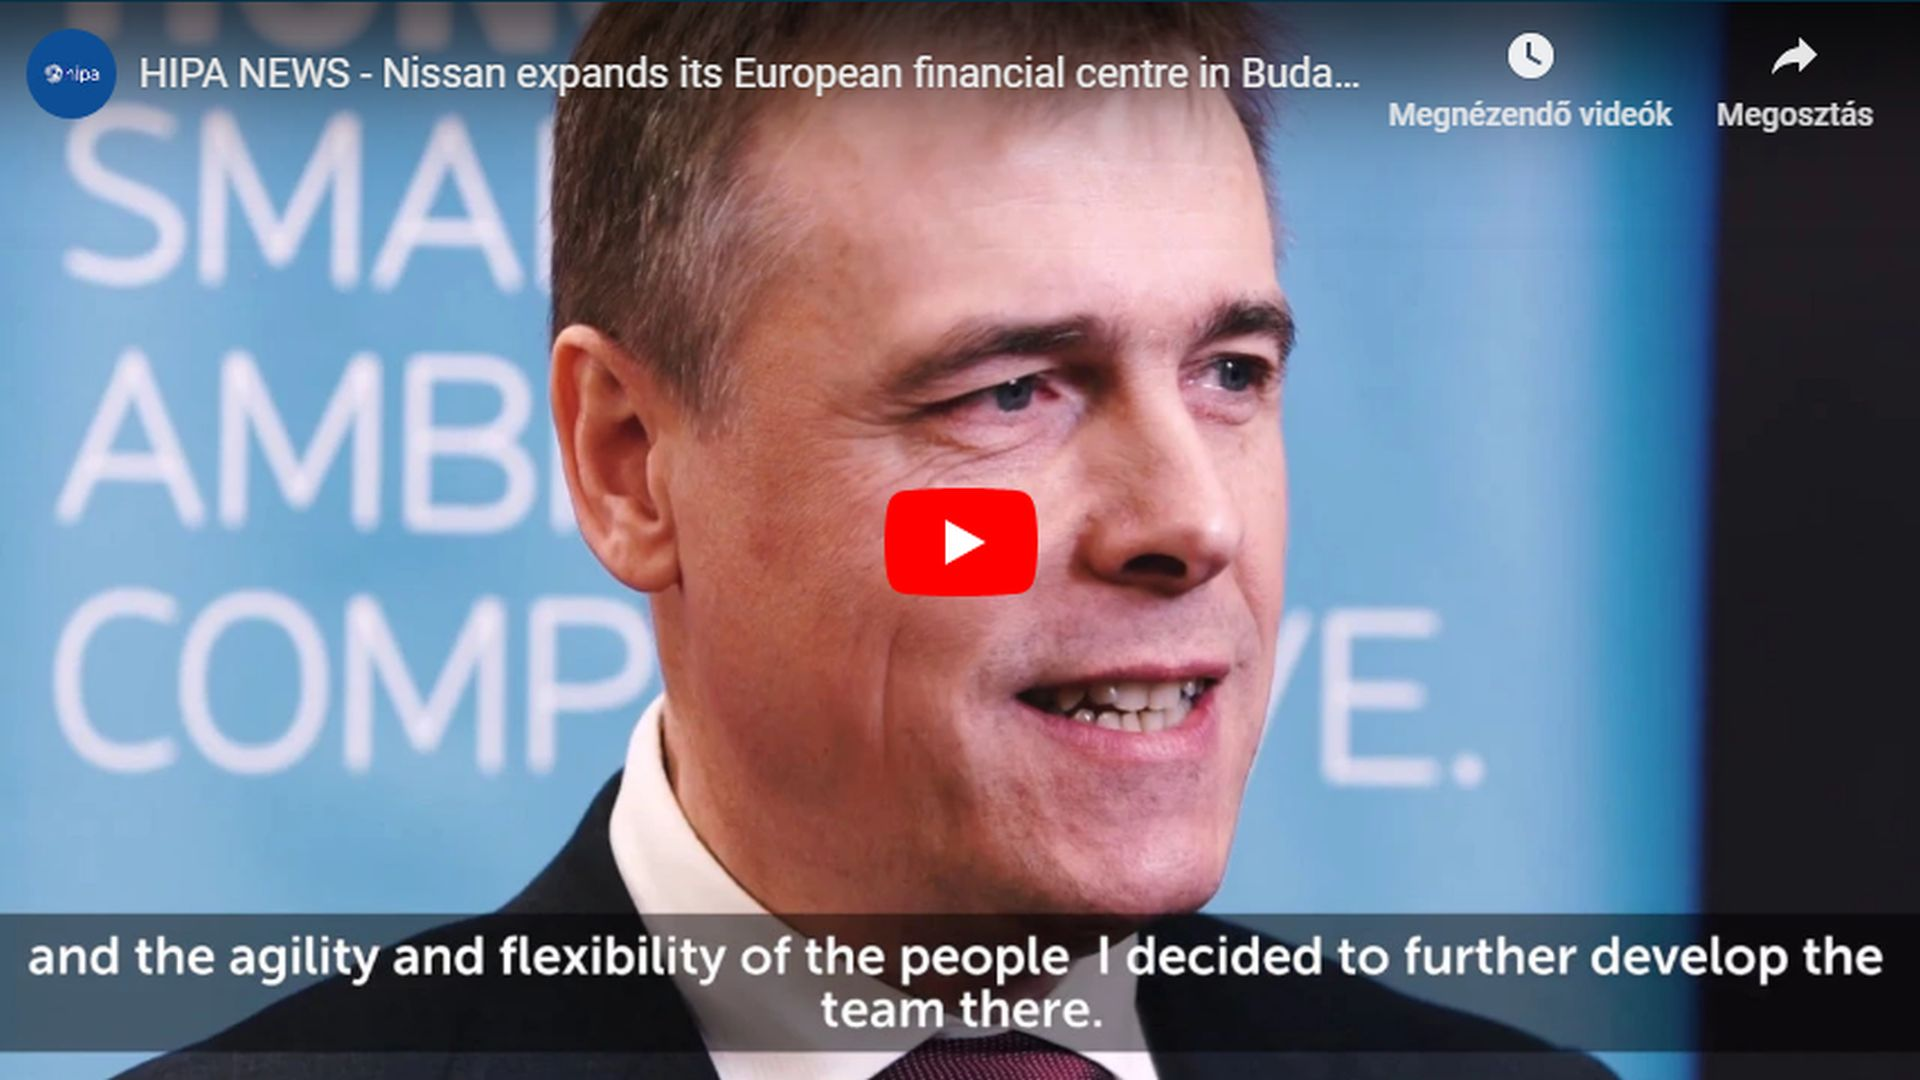 Nissan to develop its European financial centre in Budapest - VIDEO REPORT